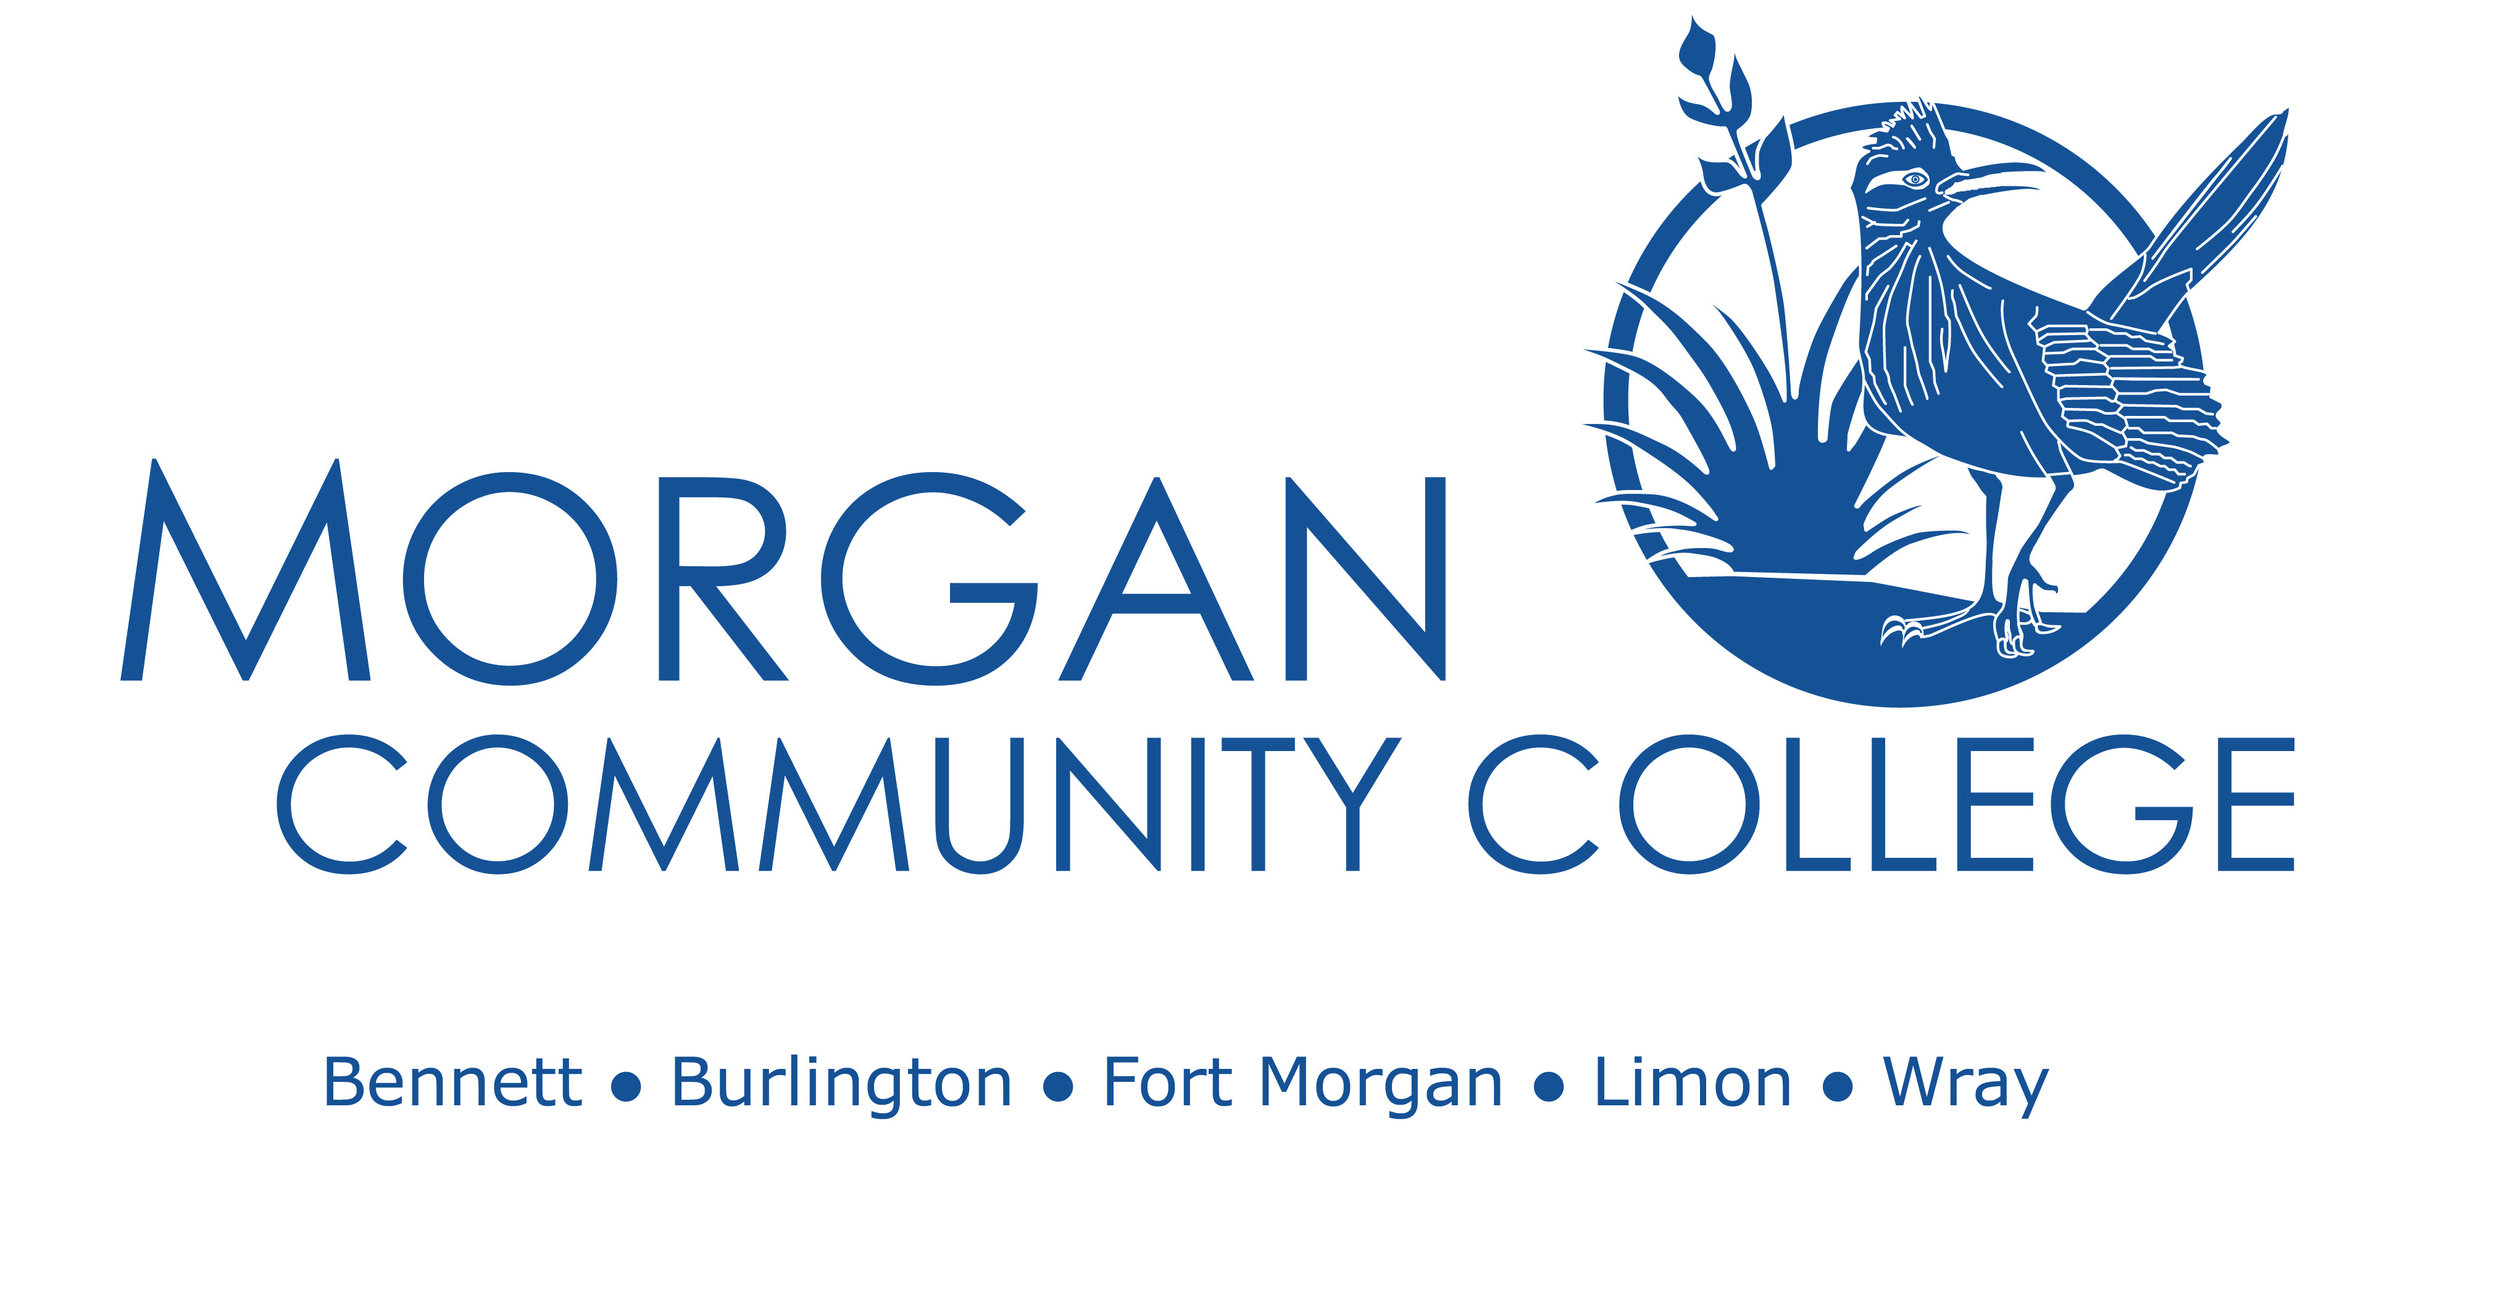 MCC-Morgan-Community-College.jpg